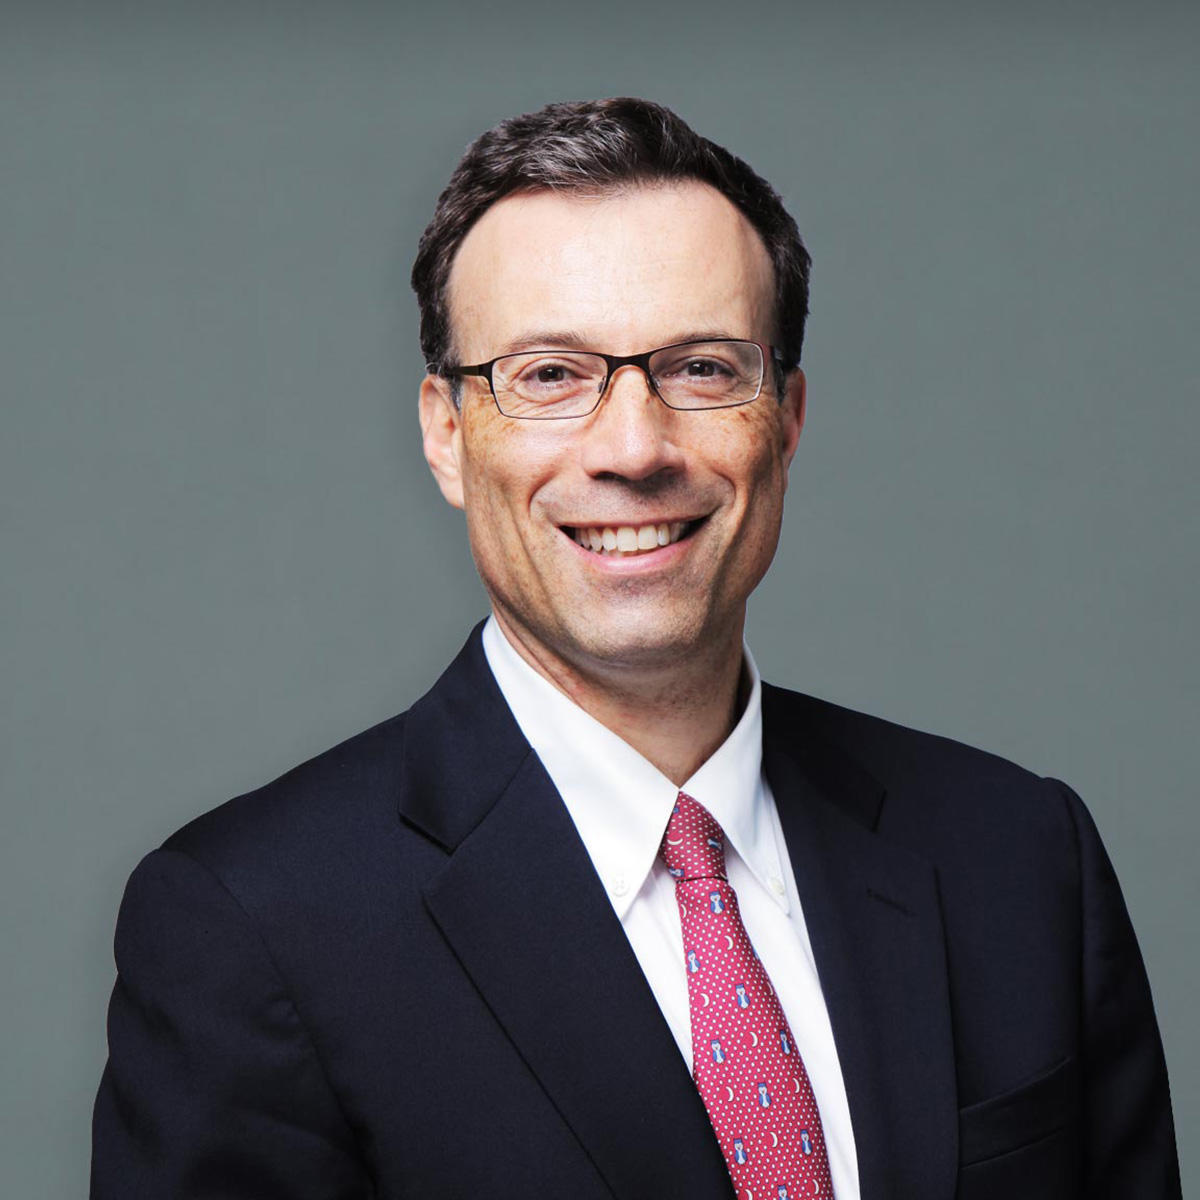 Michael H. Perskin, MD